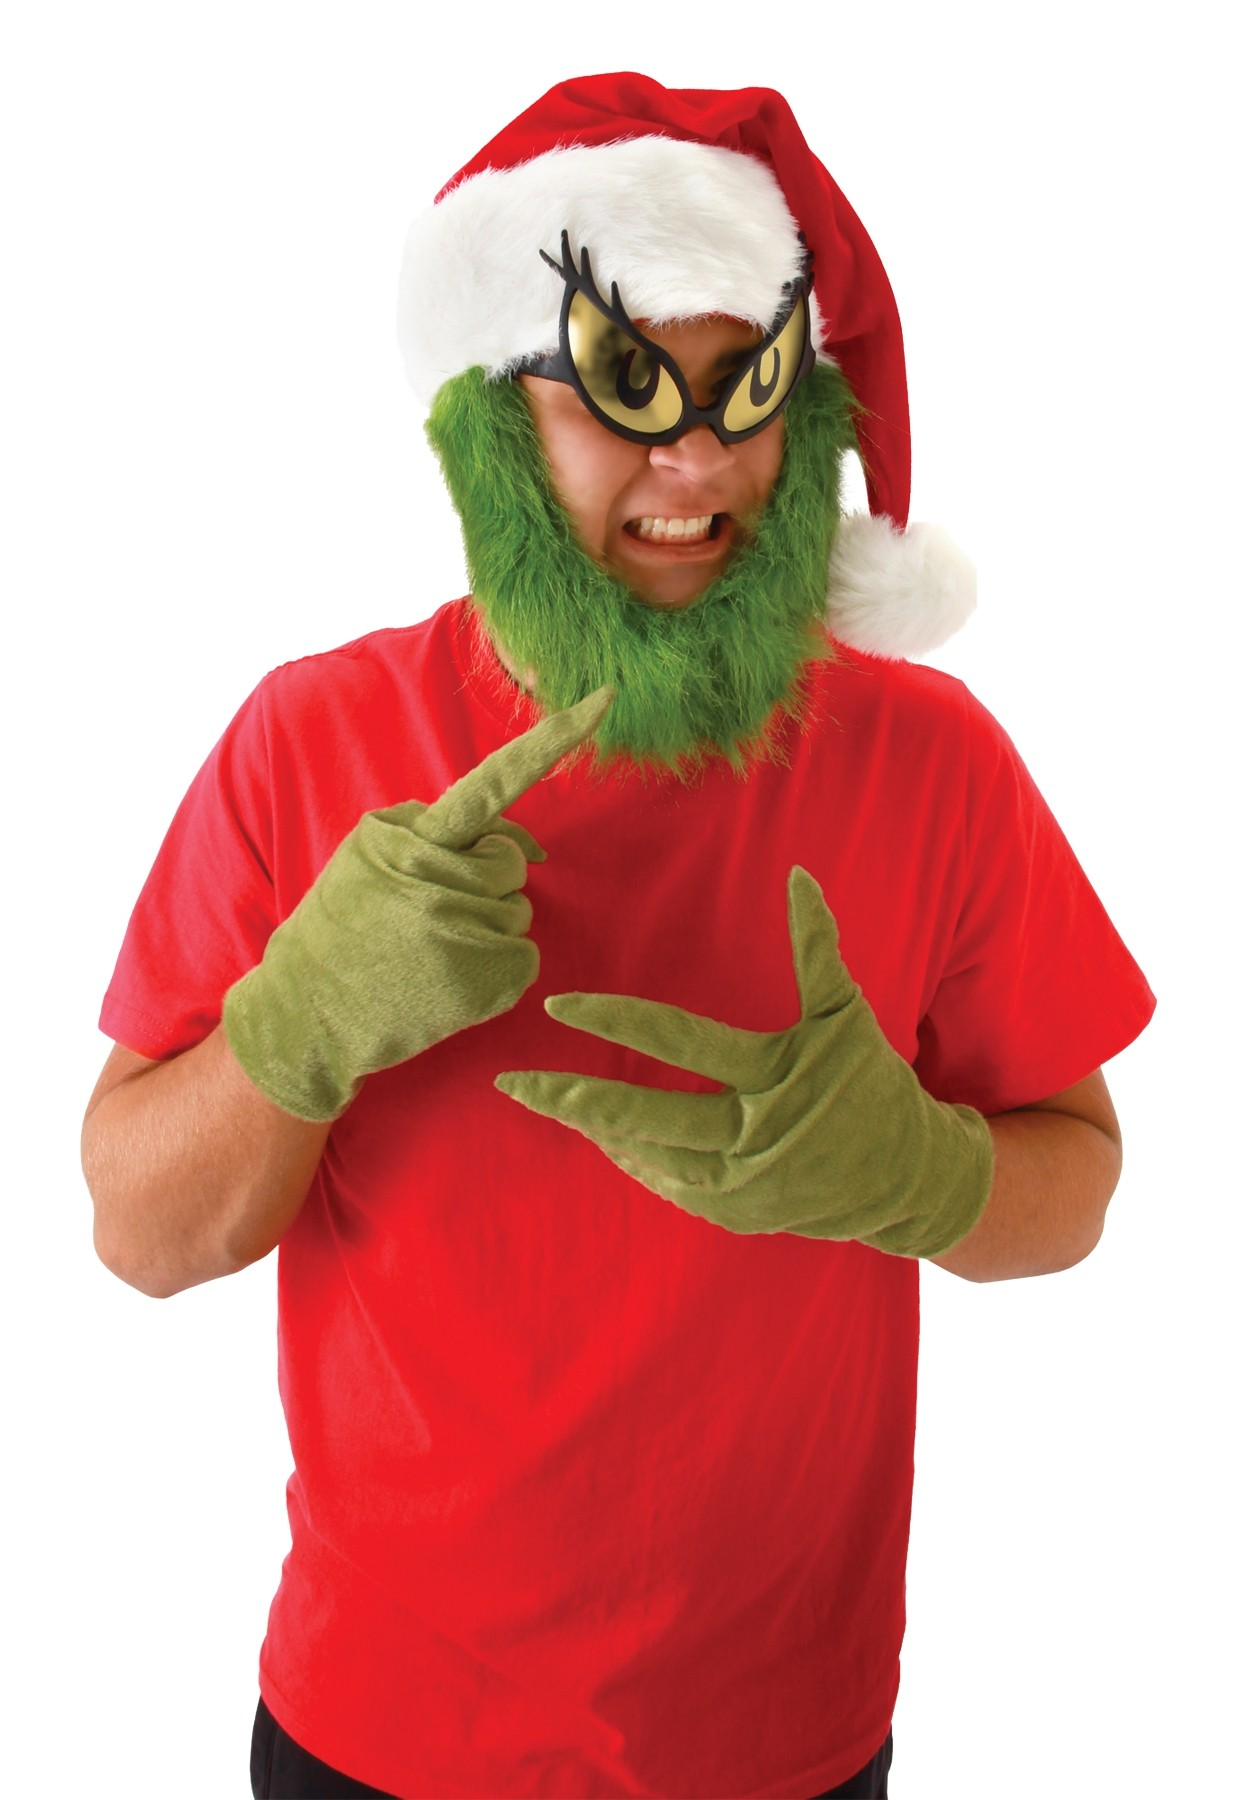 cb30400cf0034 How the Grinch Stole Christmas Grinch Hat With Beard Adult Costume Accessory .jpg